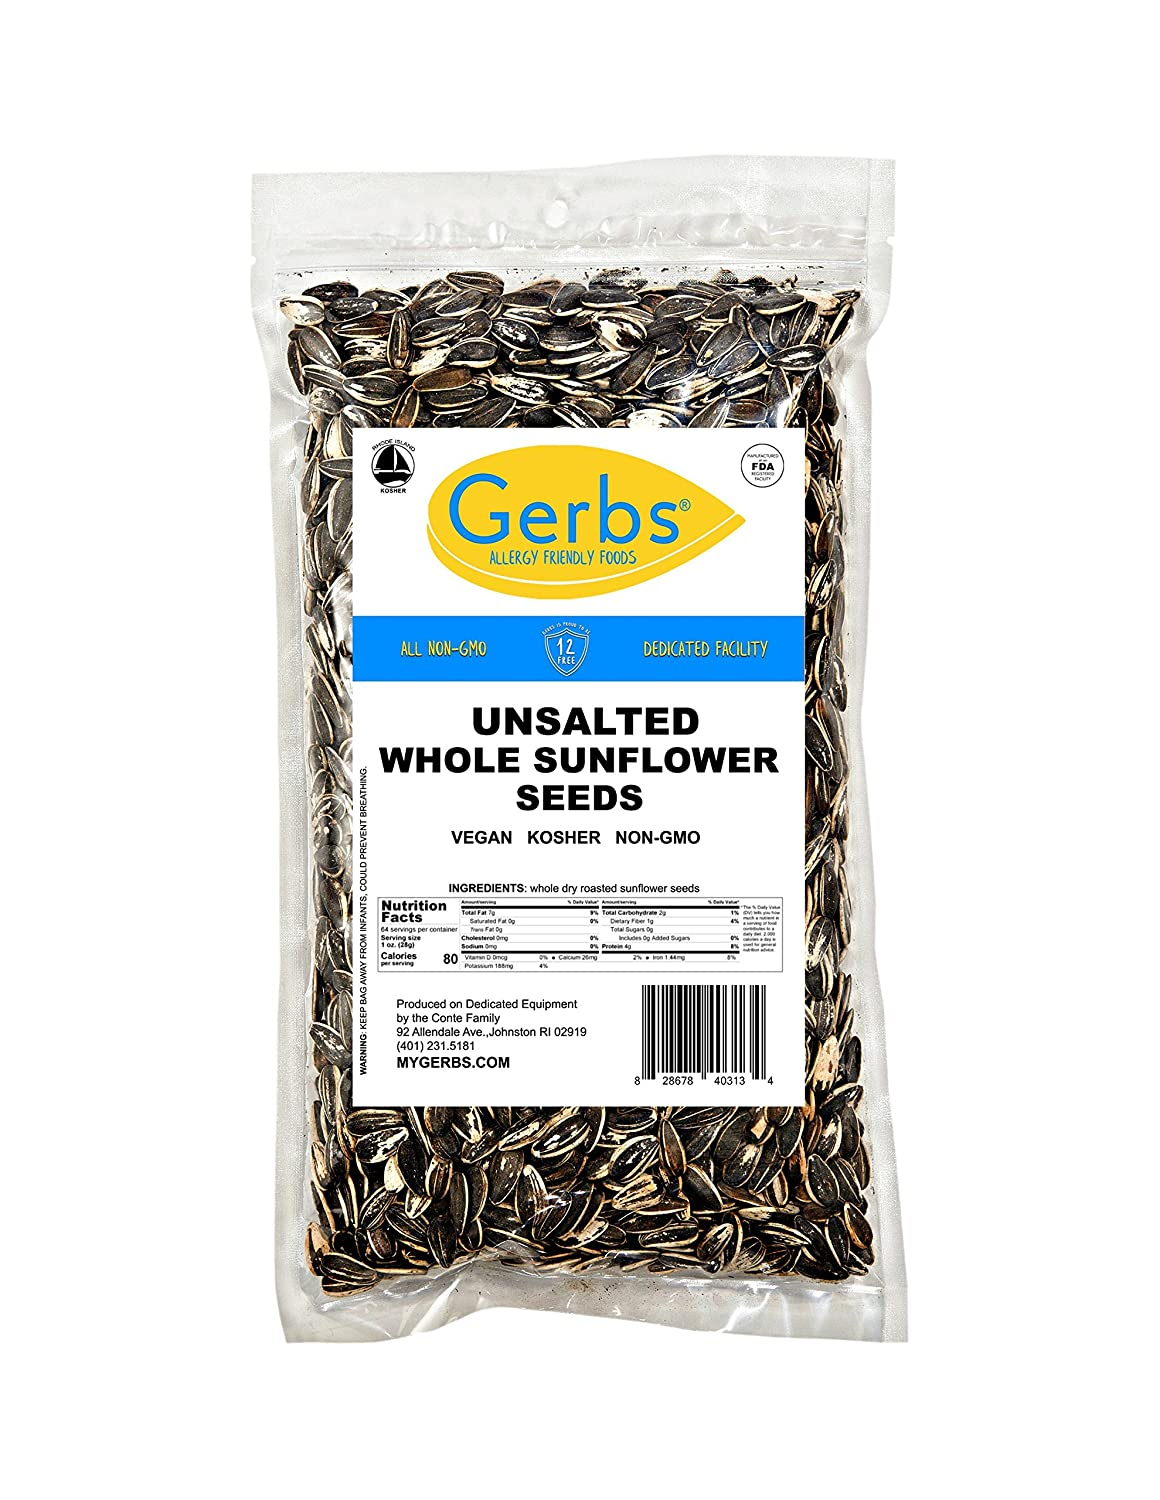 GERBS Roasted Whole Sunflower Seeds, 64 ounce Bag, Unsalted, Top 14 Food Allergen Free, Non GMO, Vegan, Keto, Paleo Friendly